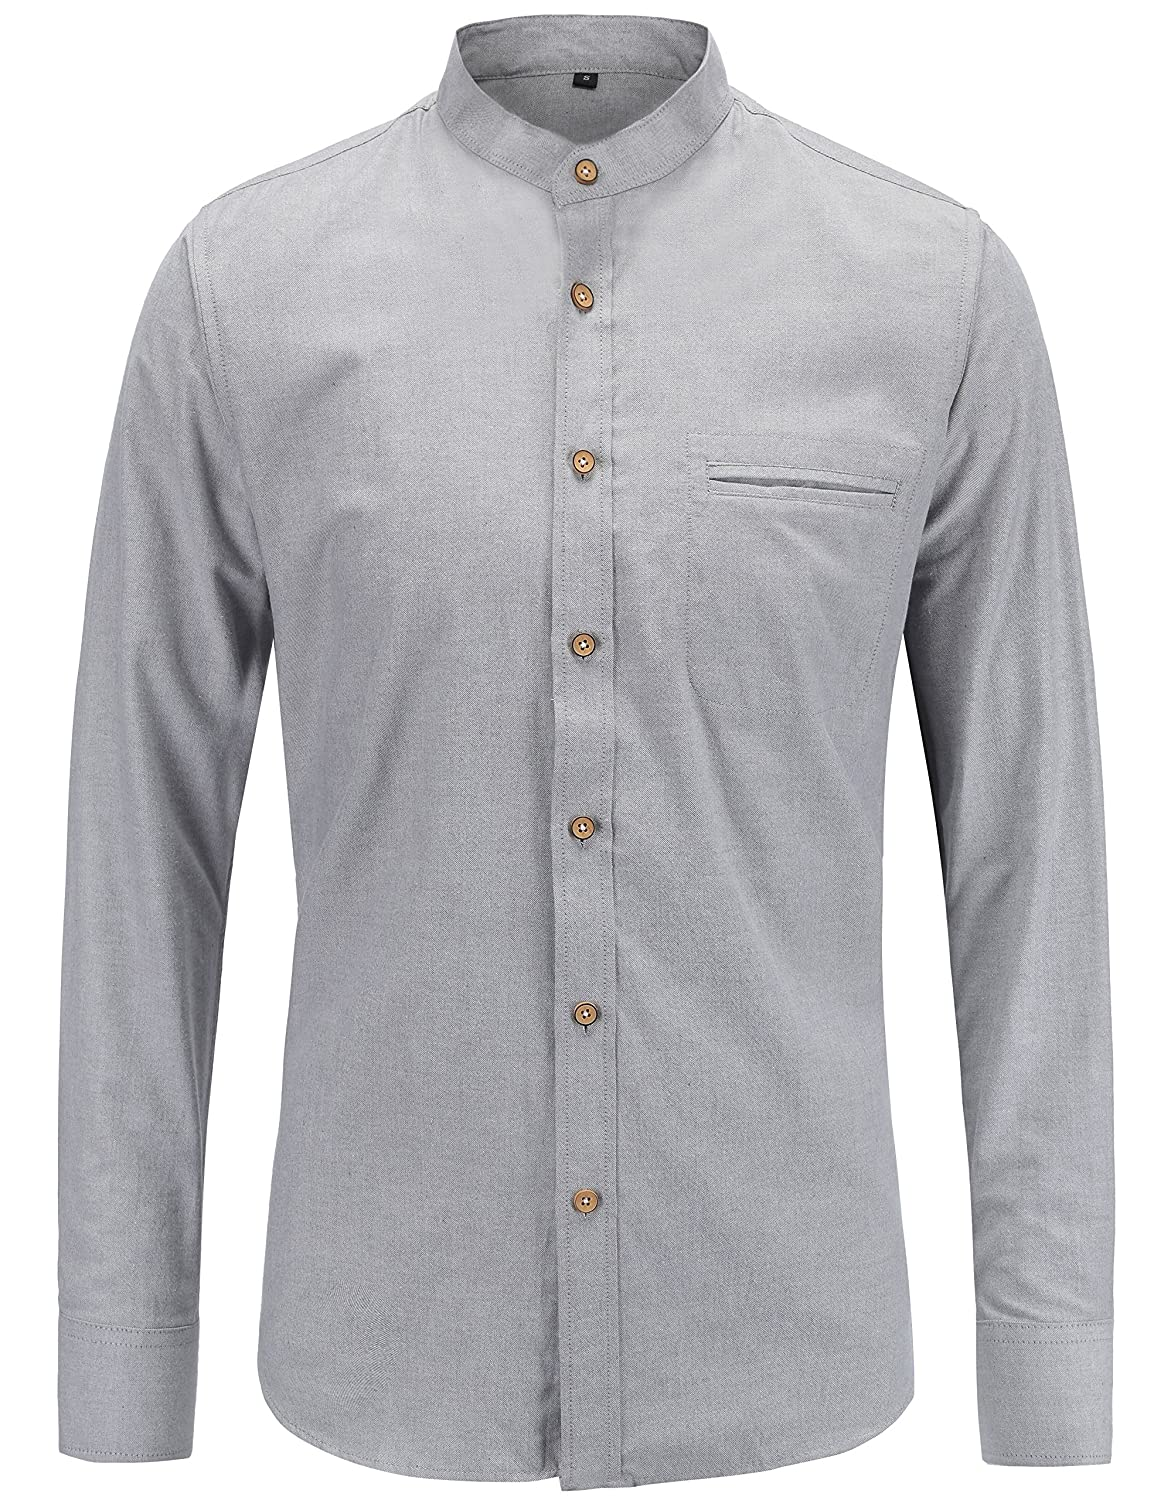 TALLA S. JEETOO Camisas Hombre Casual de Manga Larga Color Sólido Oxford